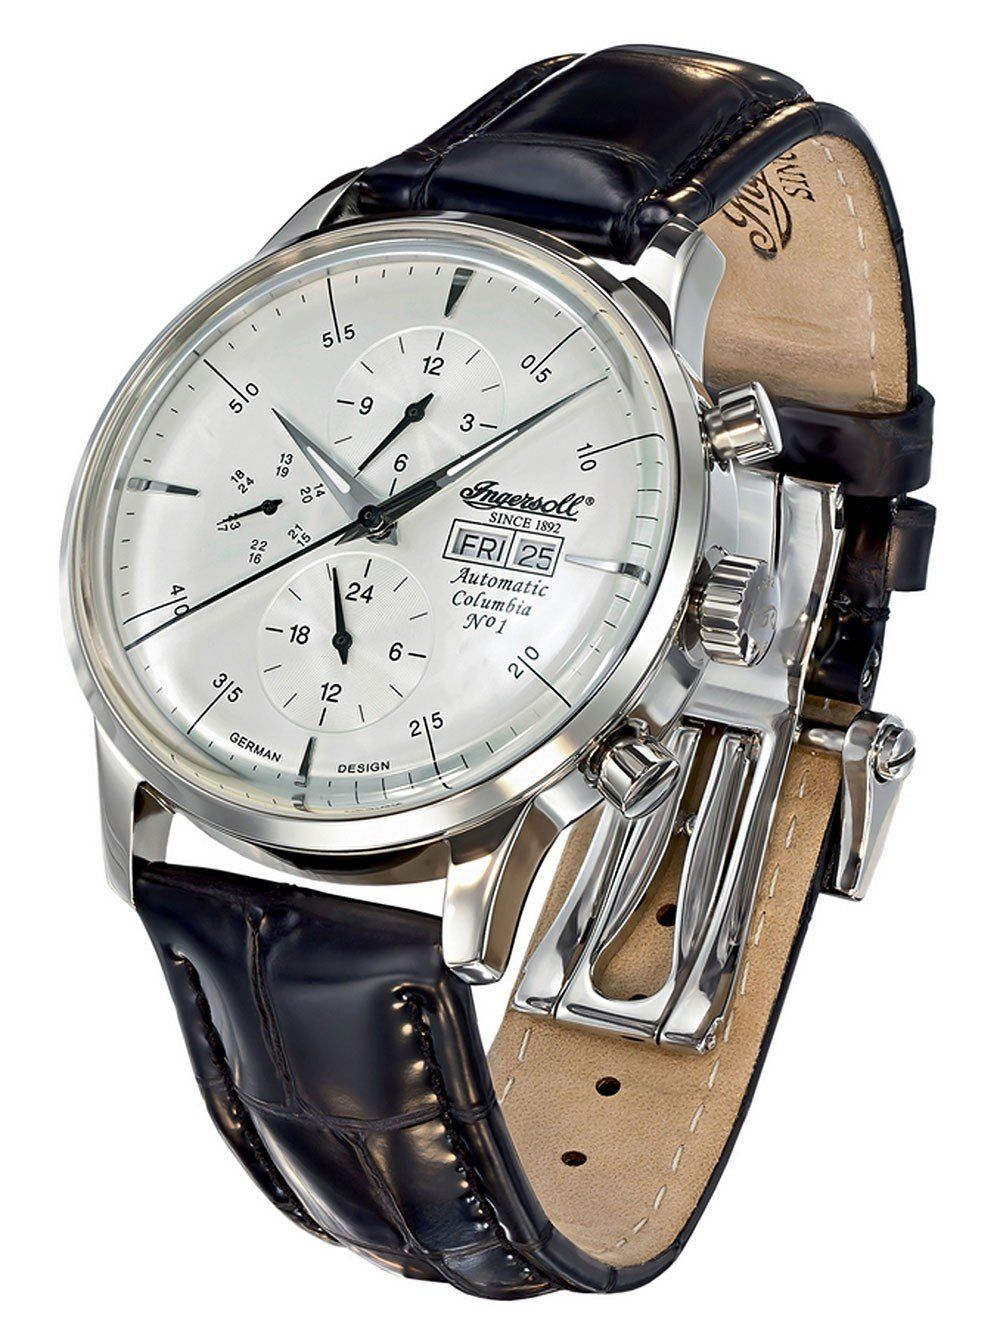 Ingersoll IN2819CH Columbia No.1 Automatik Automatic Watch, Watch Brands,  Columbia, Armband